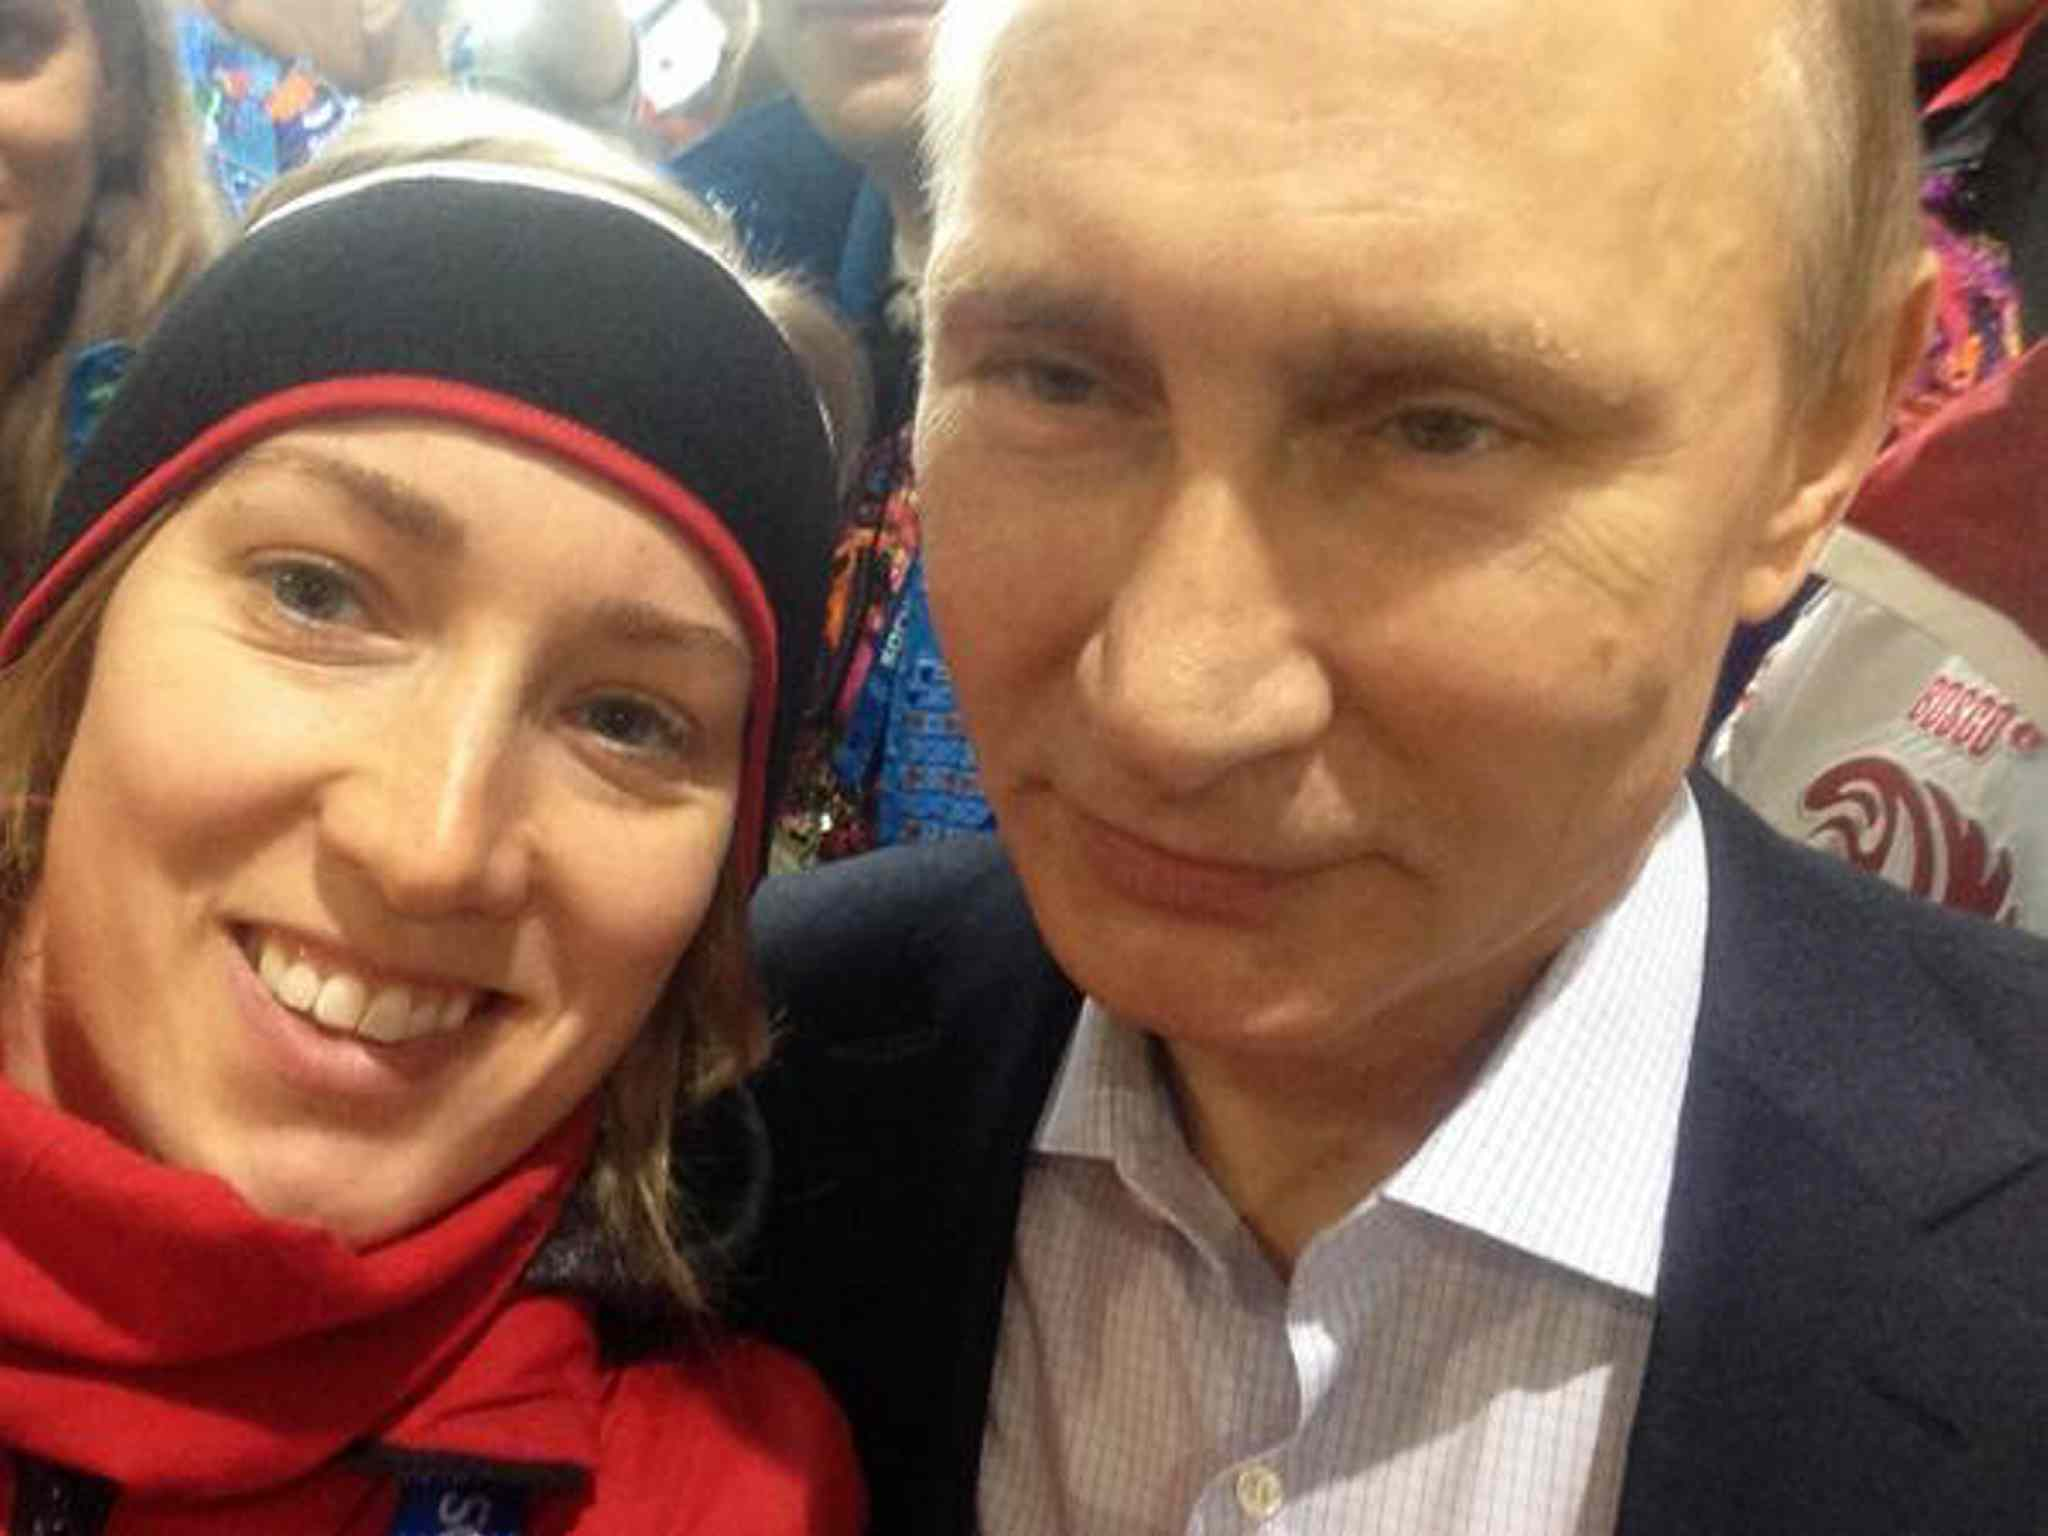 8 brittany schussler selfie with putin at canada house sochi - best sports selfies